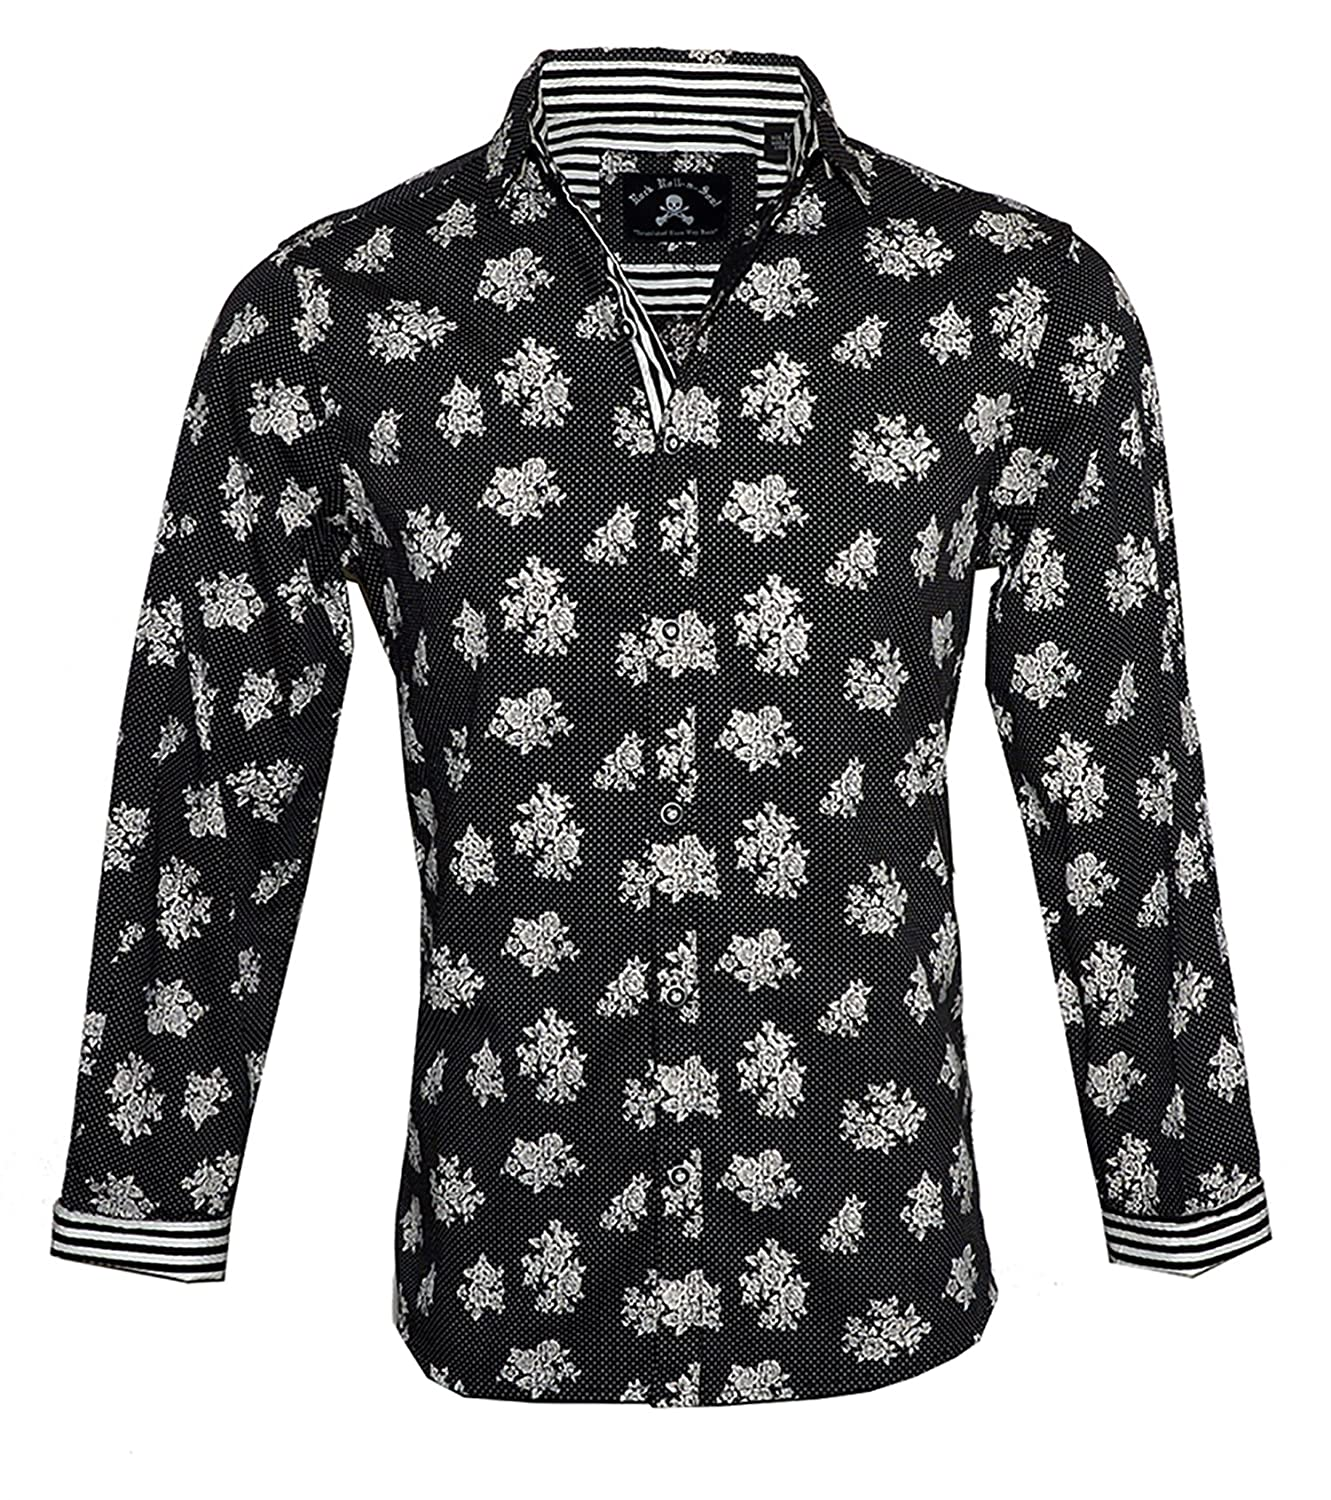 fa95f90ecf39 Rock Roll-n-Soul Men's Long Sleeve Floral Button up Fashion Shirt In Black  Slightly Dazed 390B at Amazon Men's Clothing store: